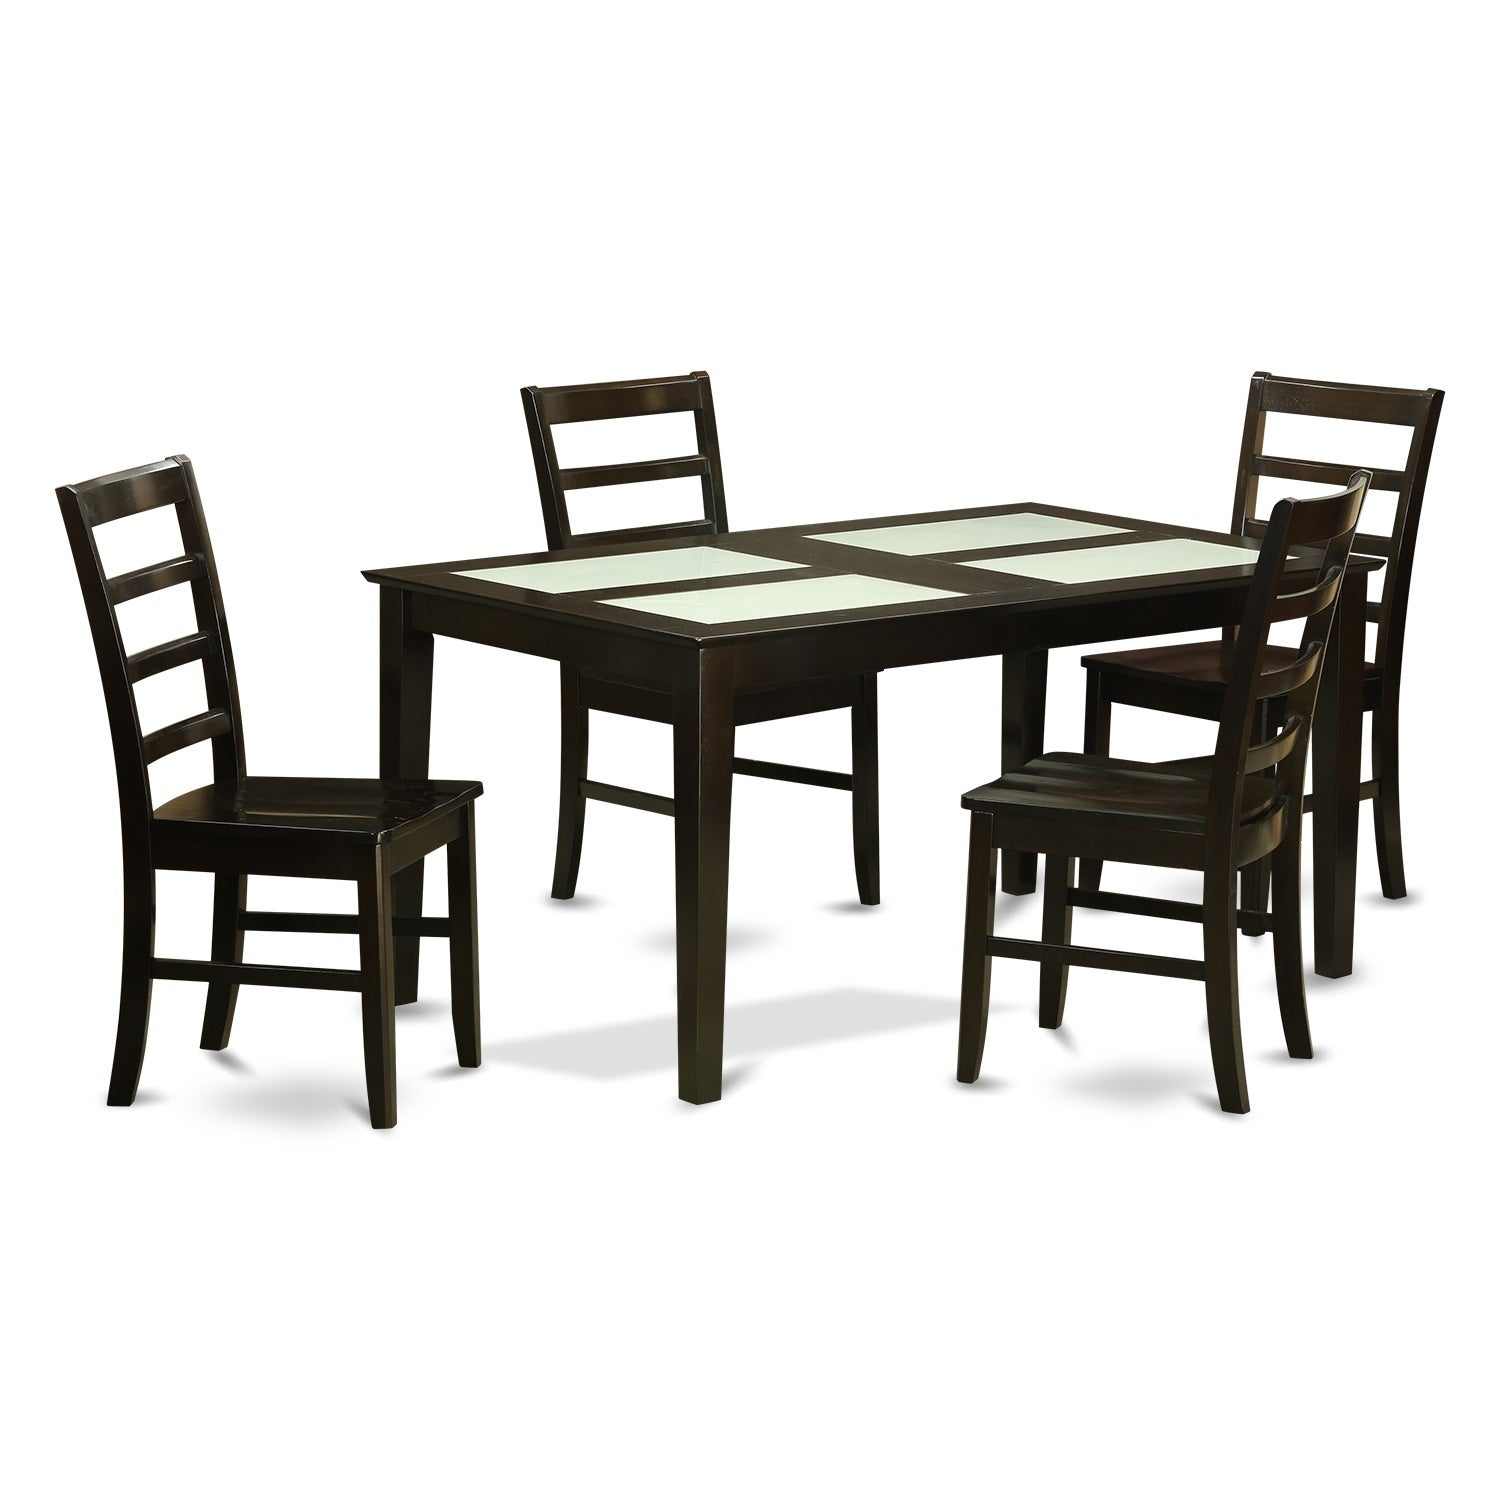 CAPF5G-CAP 5 Pc Dining set- Glass Top Dining Table and 4 ...